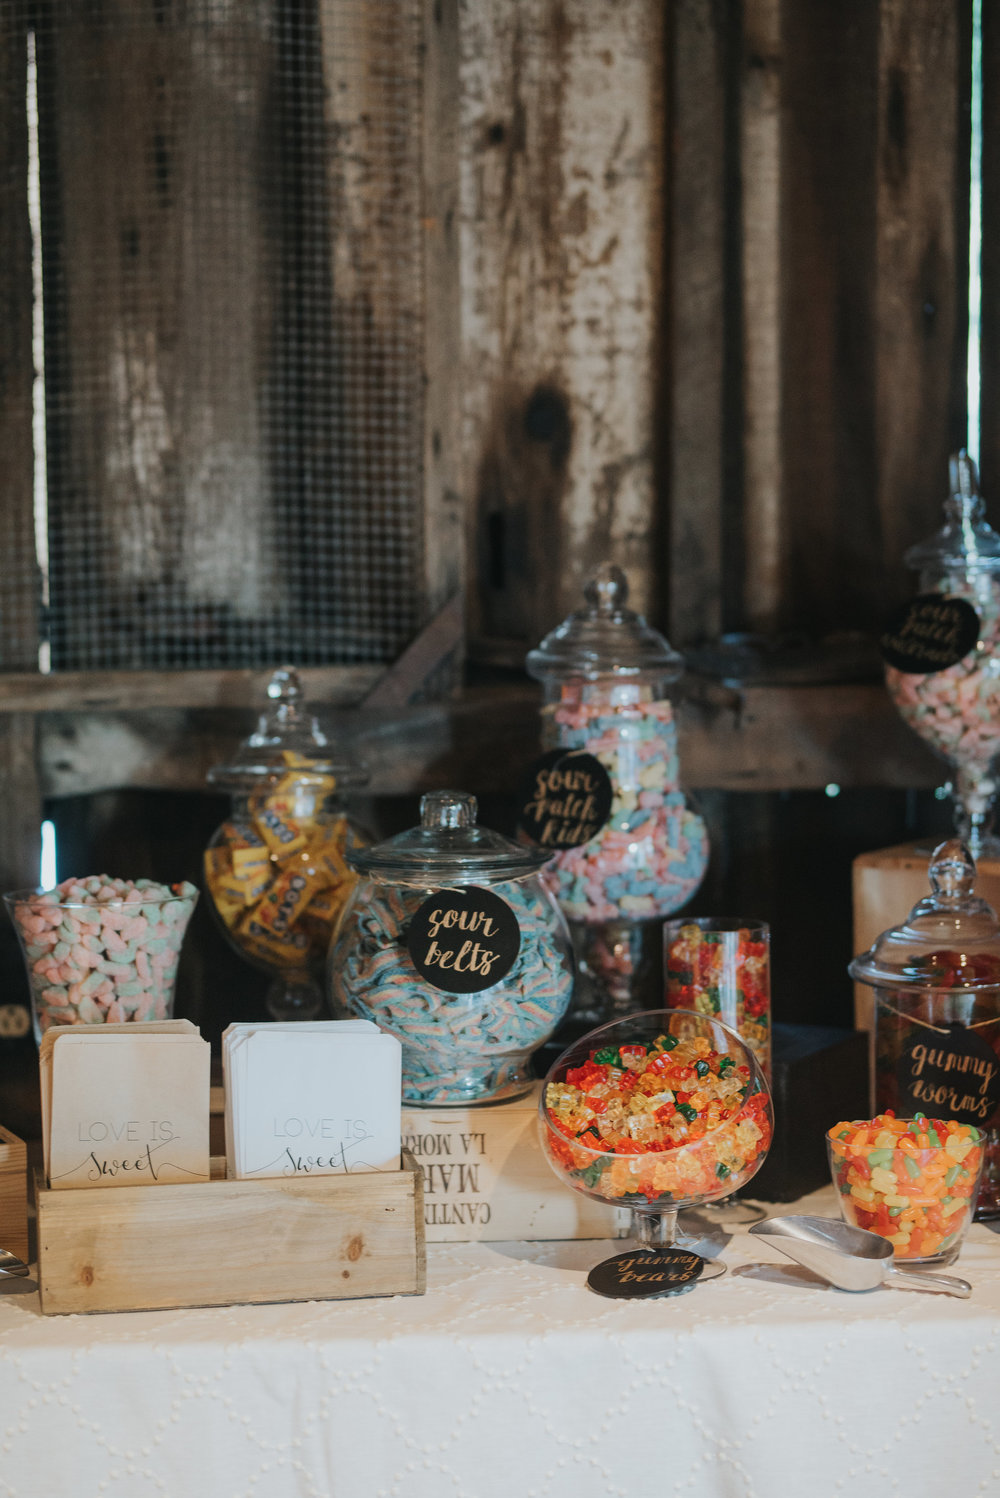 rus-farm-wedding-heald-wedding-consulting-hwc-candy-bar-station.jpg